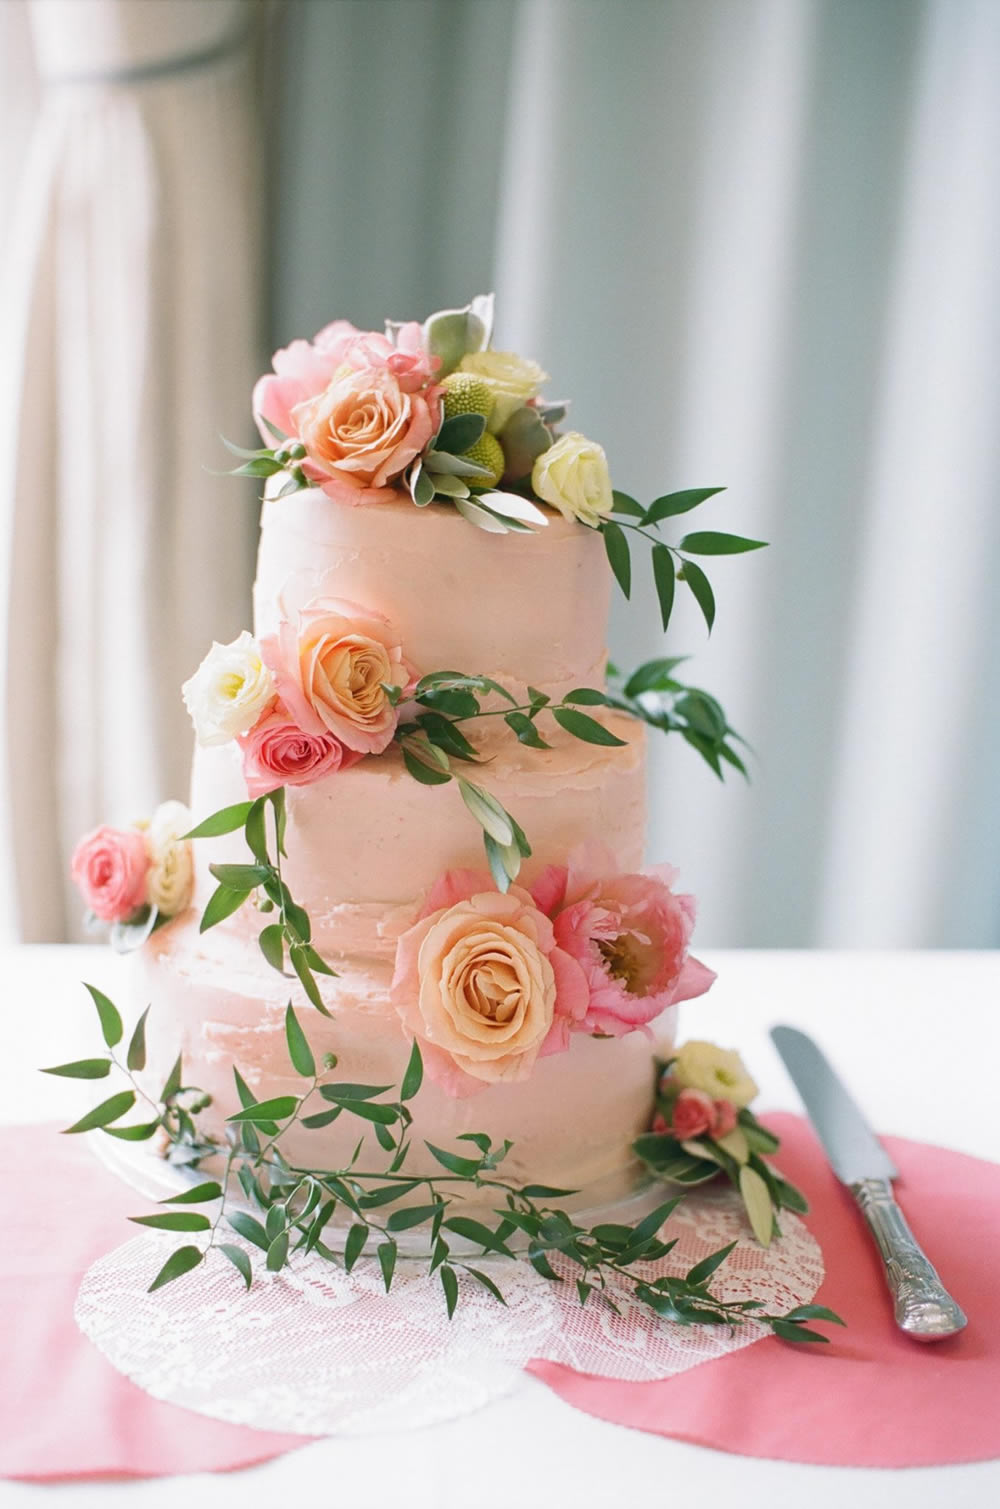 Floral decoration on cake